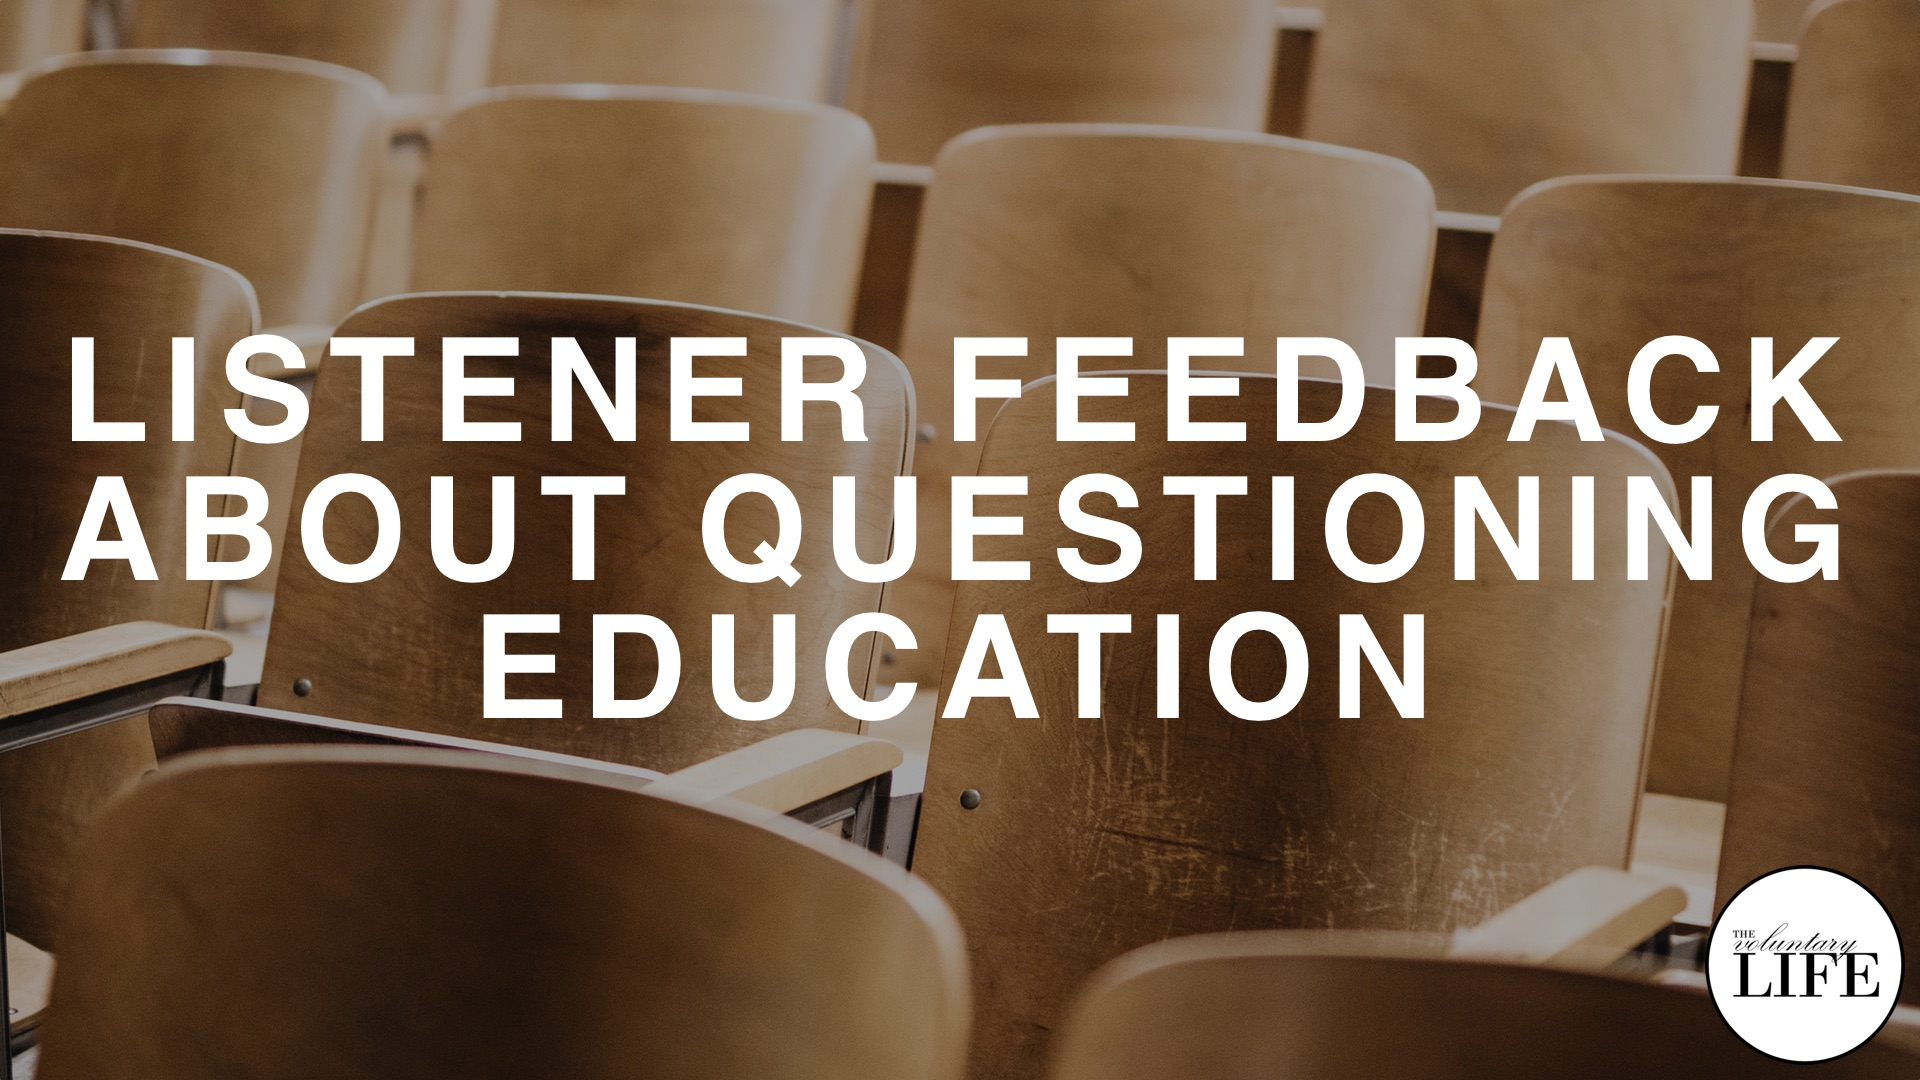 343 Listener Feedback on Questioning Education